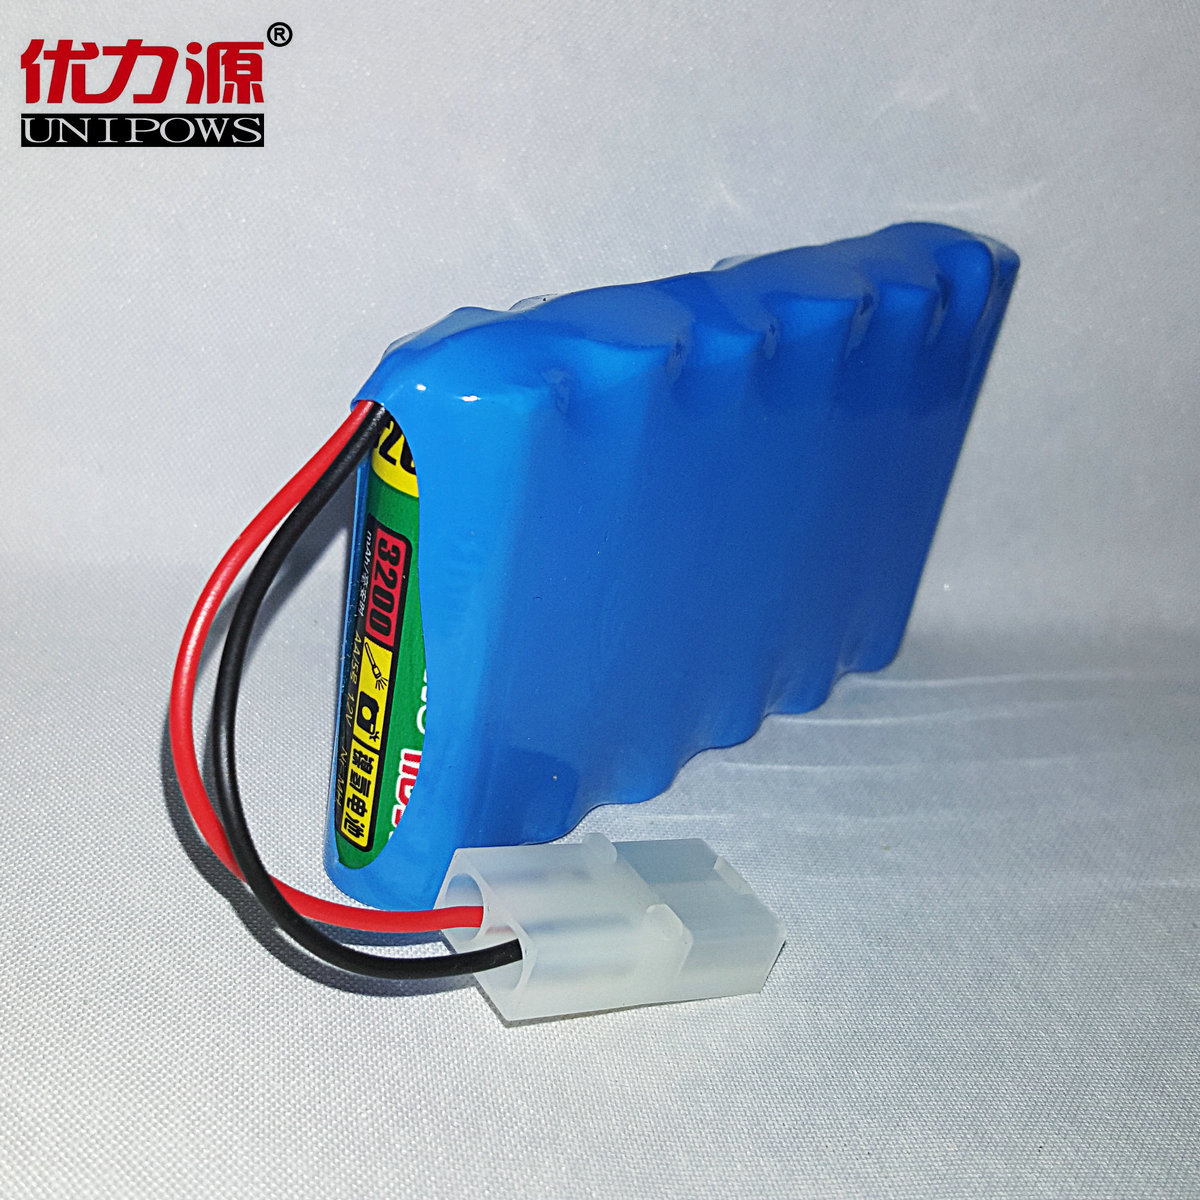 Excellent source of 3200 v battery toy car battery 5 mah single row combination with plug 2a